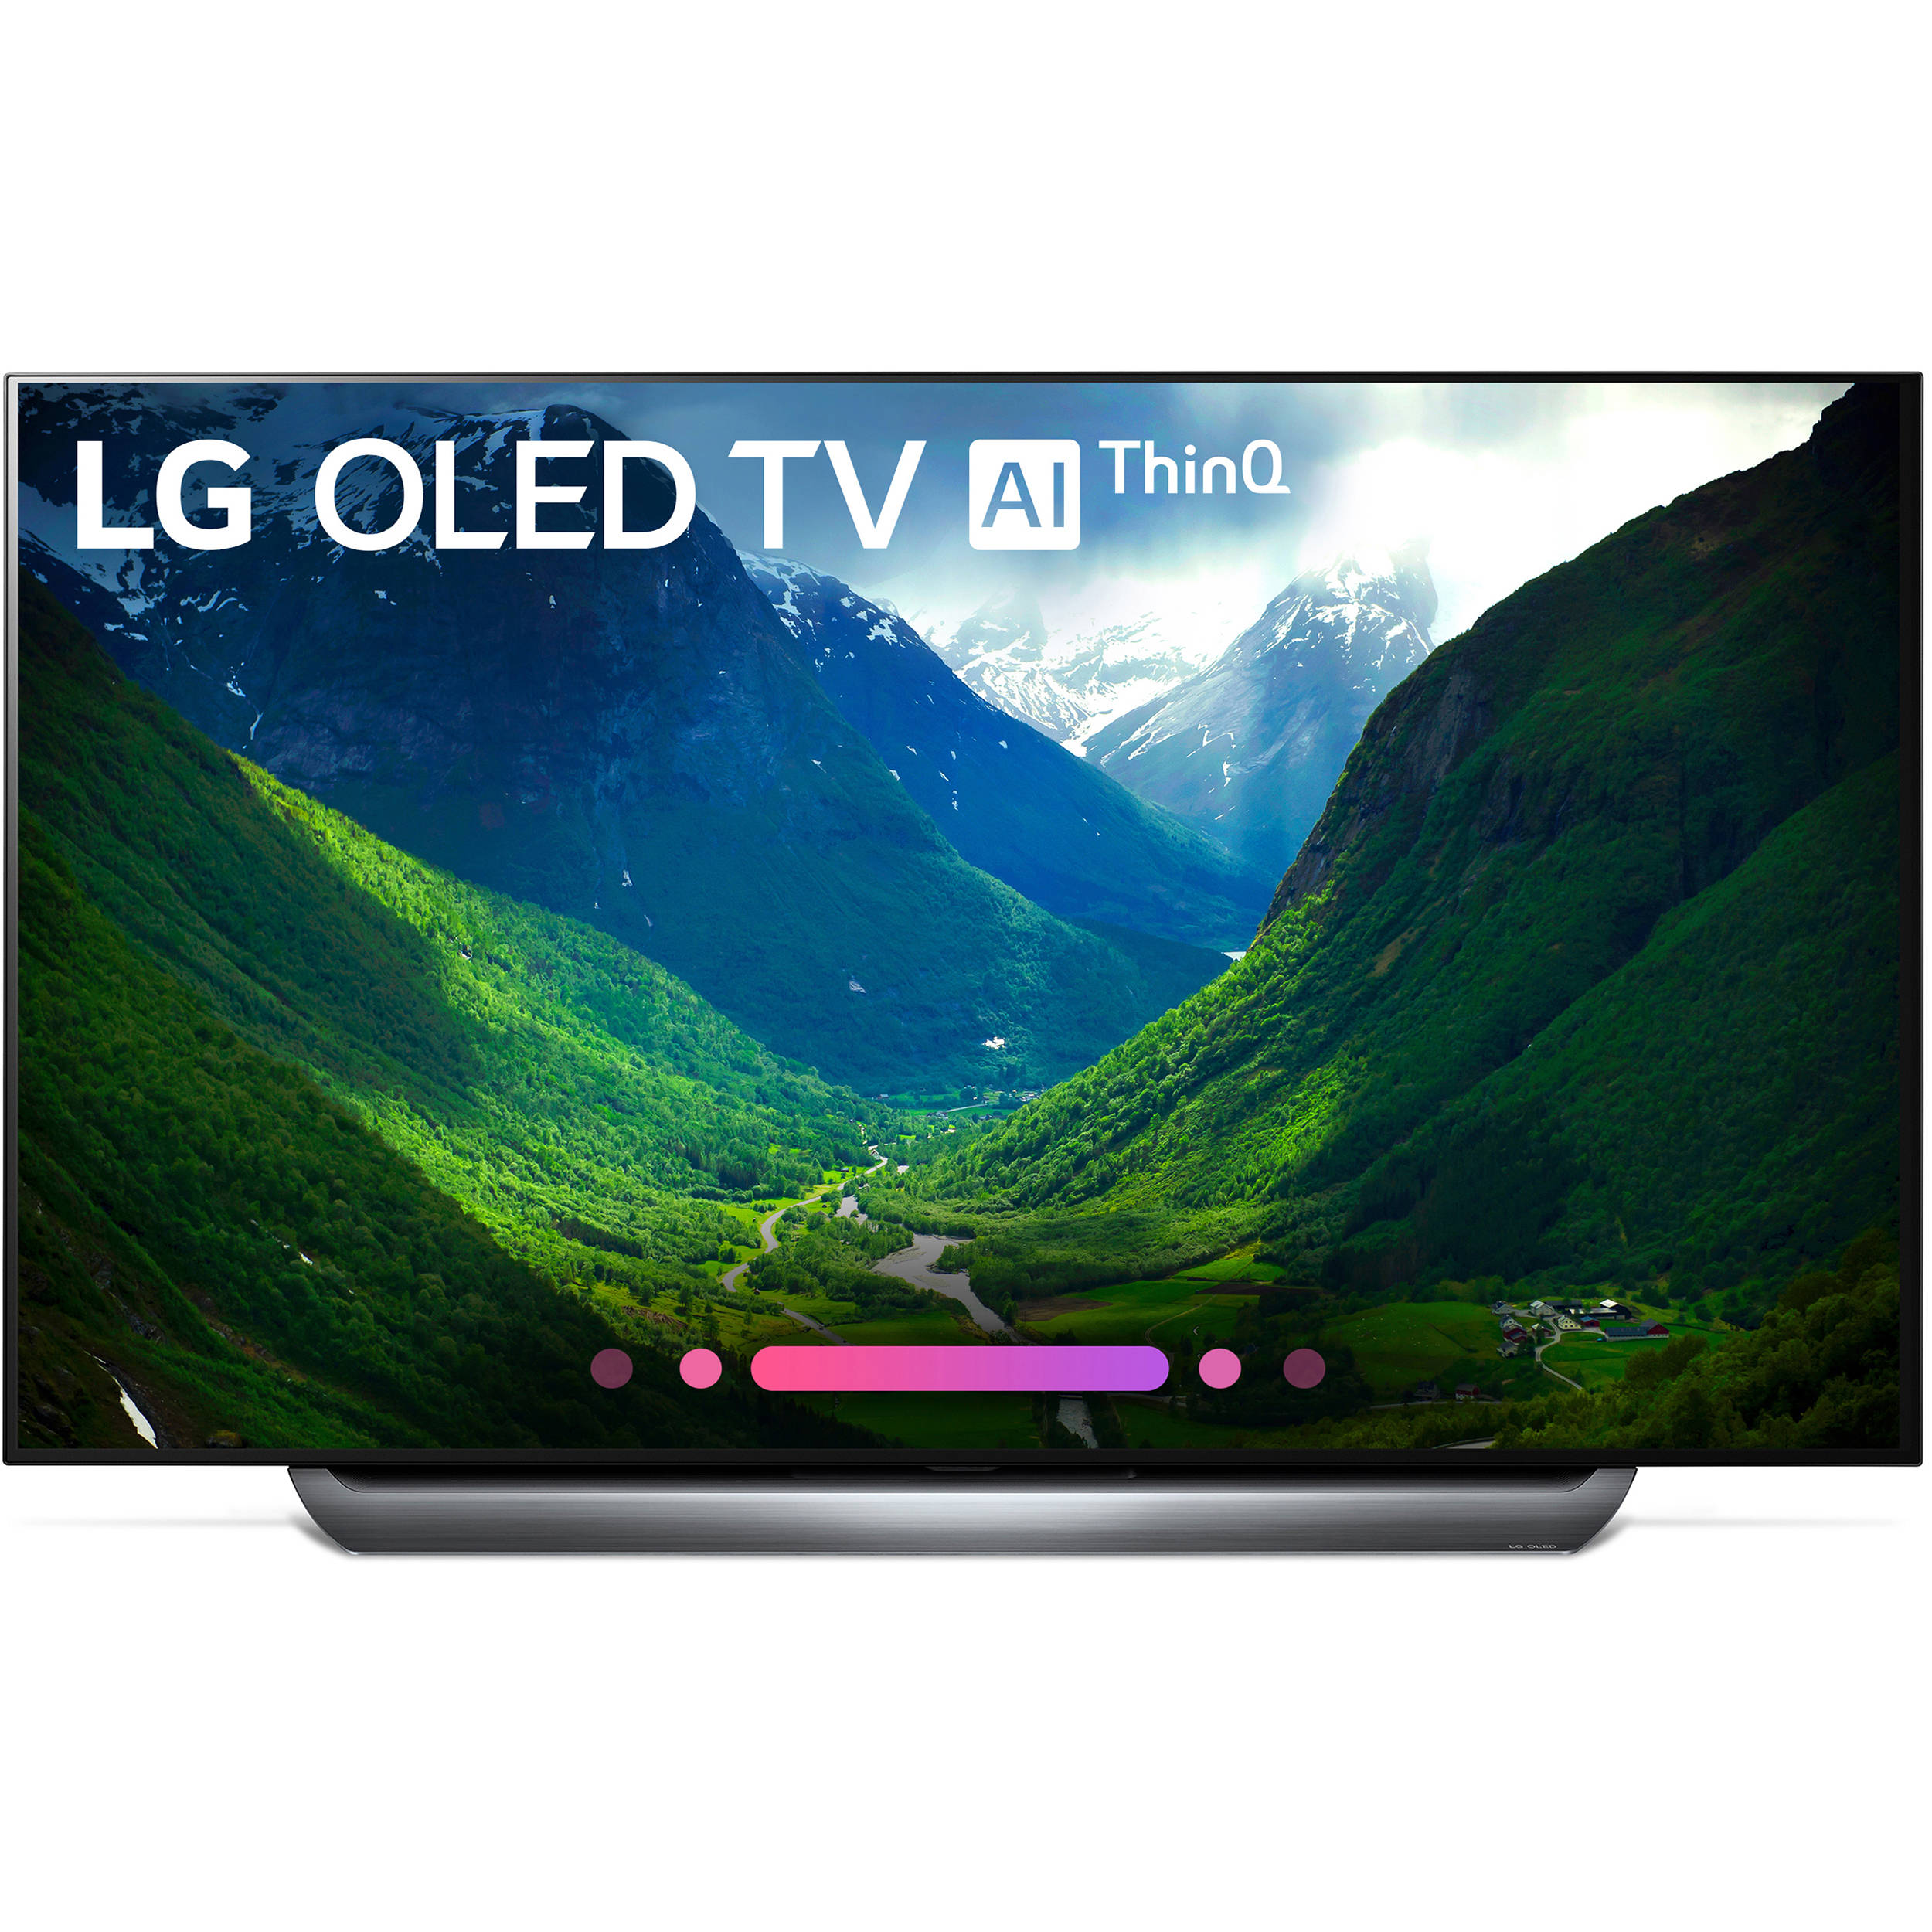 lg c8pua series 55 class hdr uhd smart oled tv oled55c8pua. Black Bedroom Furniture Sets. Home Design Ideas